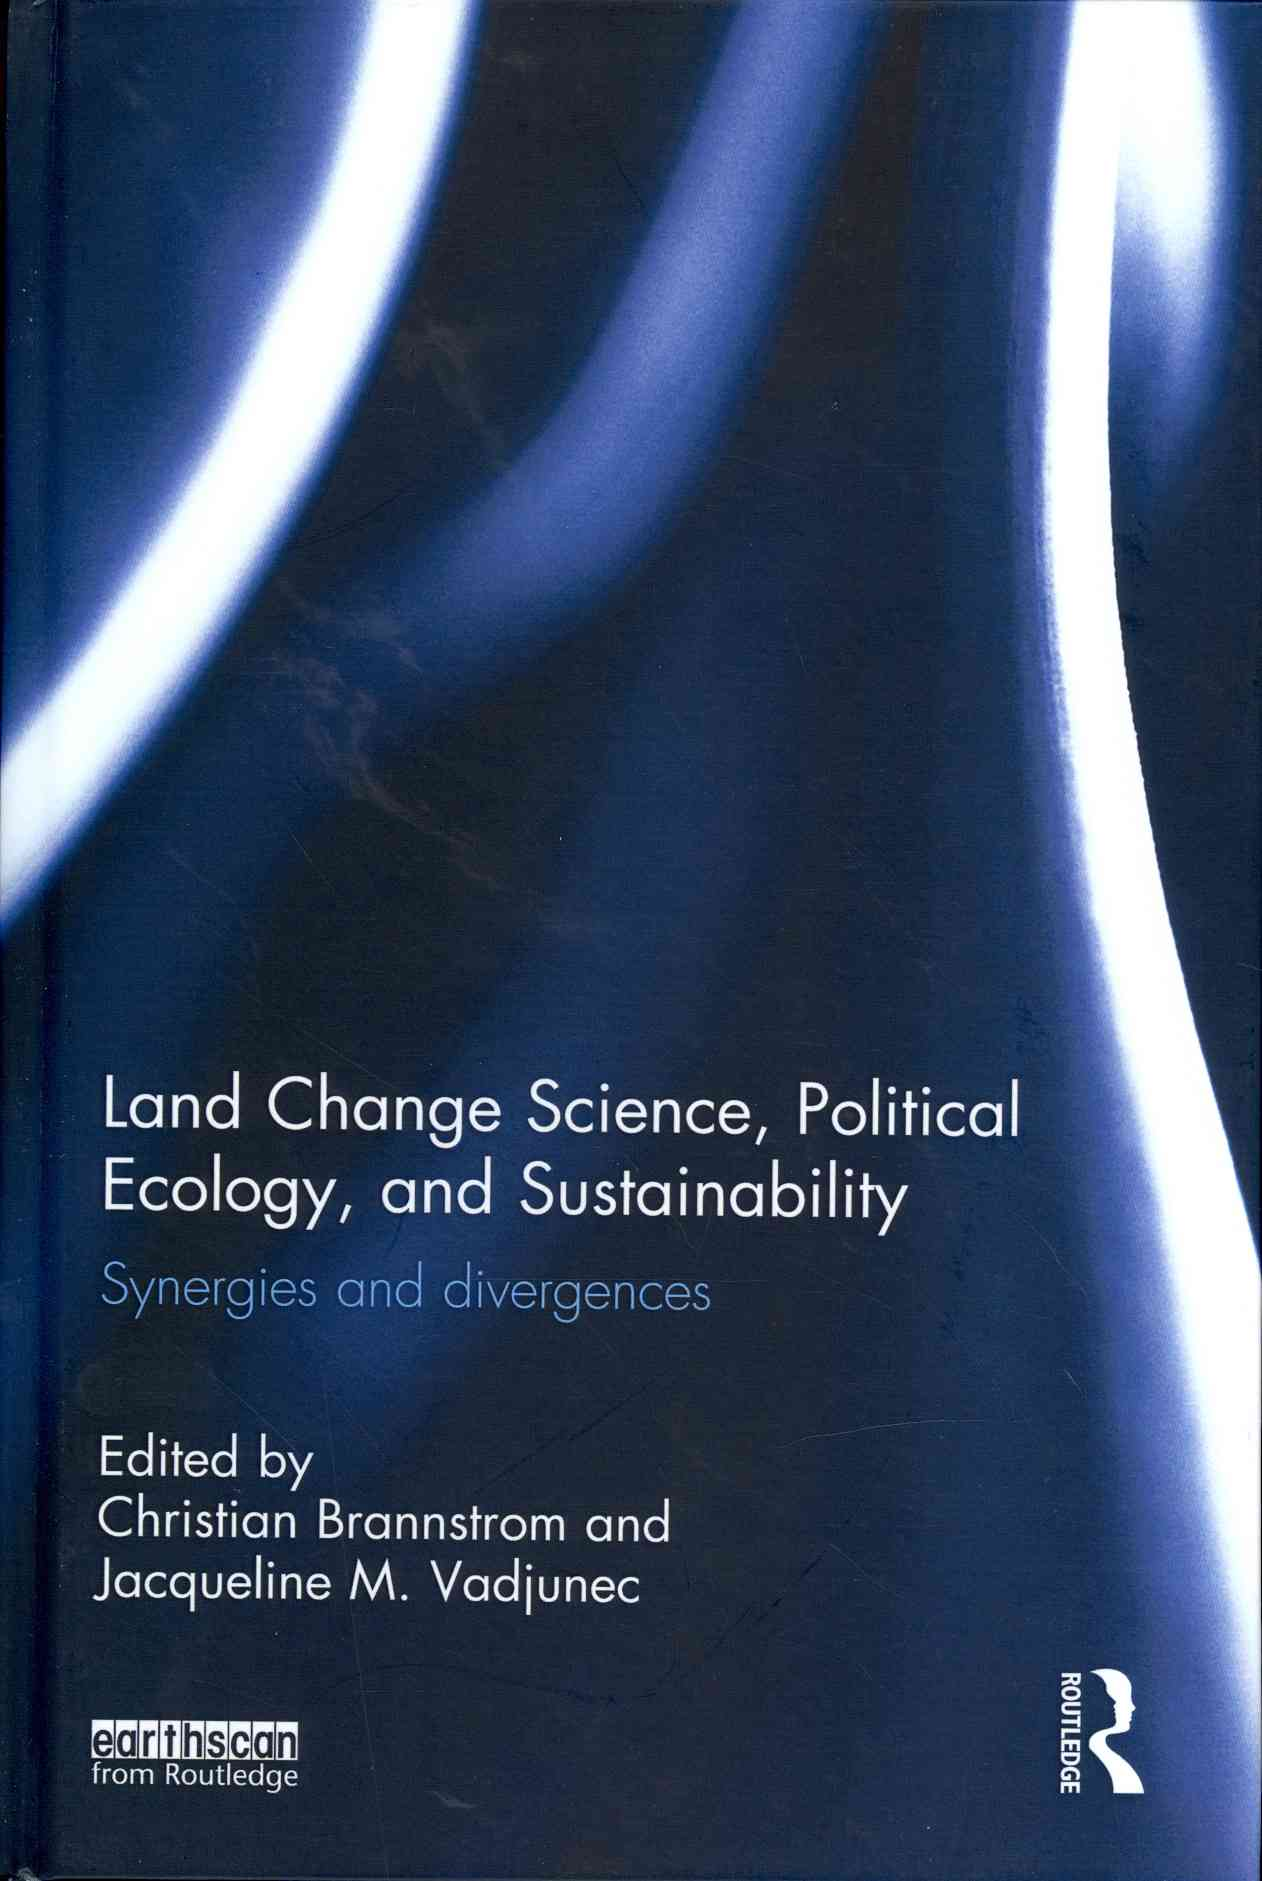 Land Change Science, Political Ecology and Sustainability By Brannstrom, Christian (EDT)/ Vadjunec, Jacqueline M. (EDT)